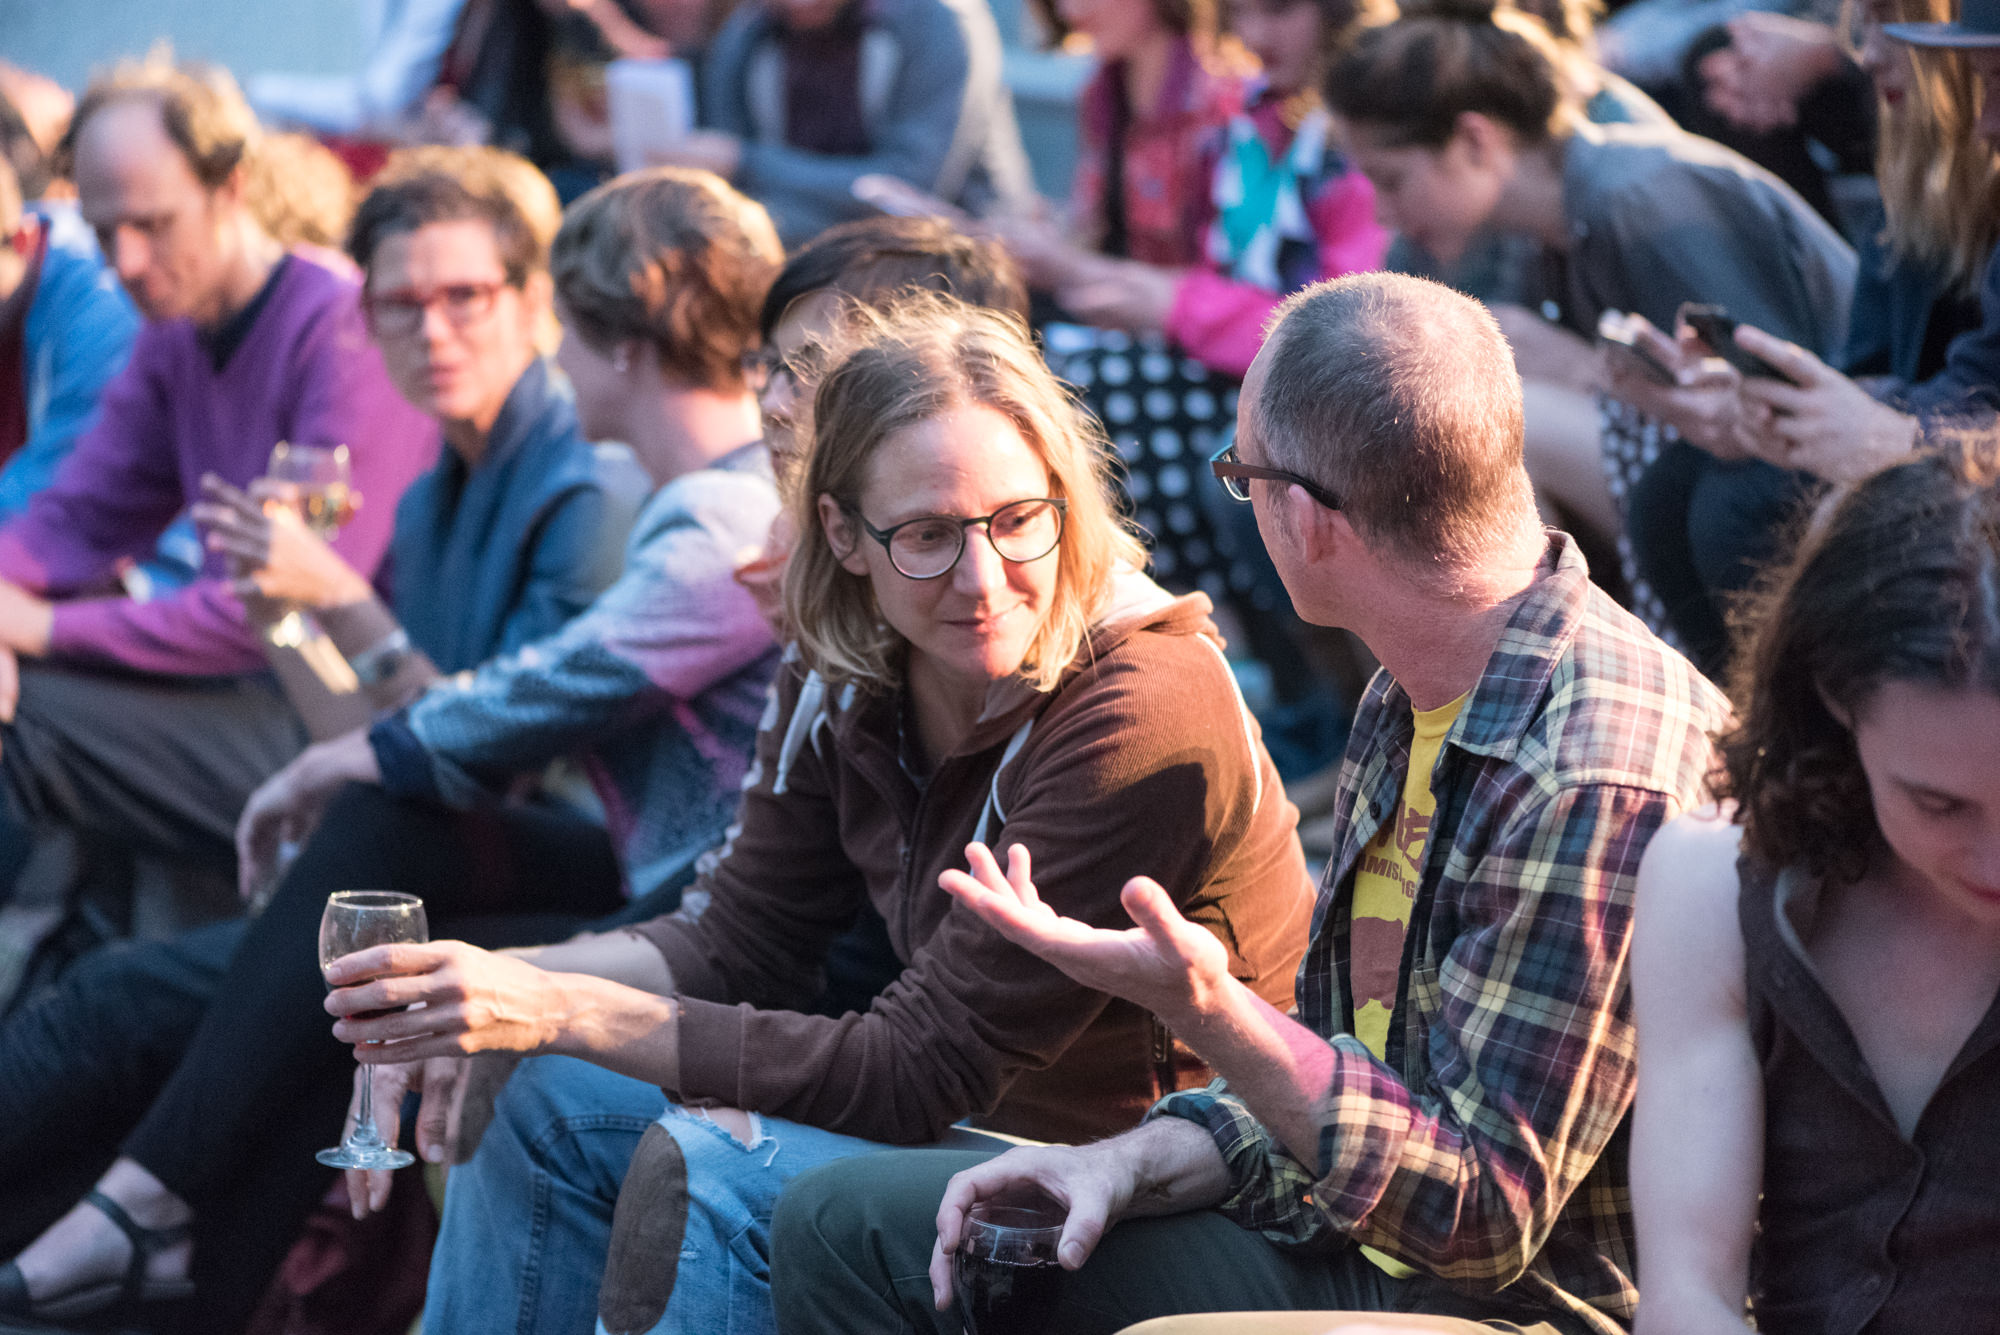 Audience chatting